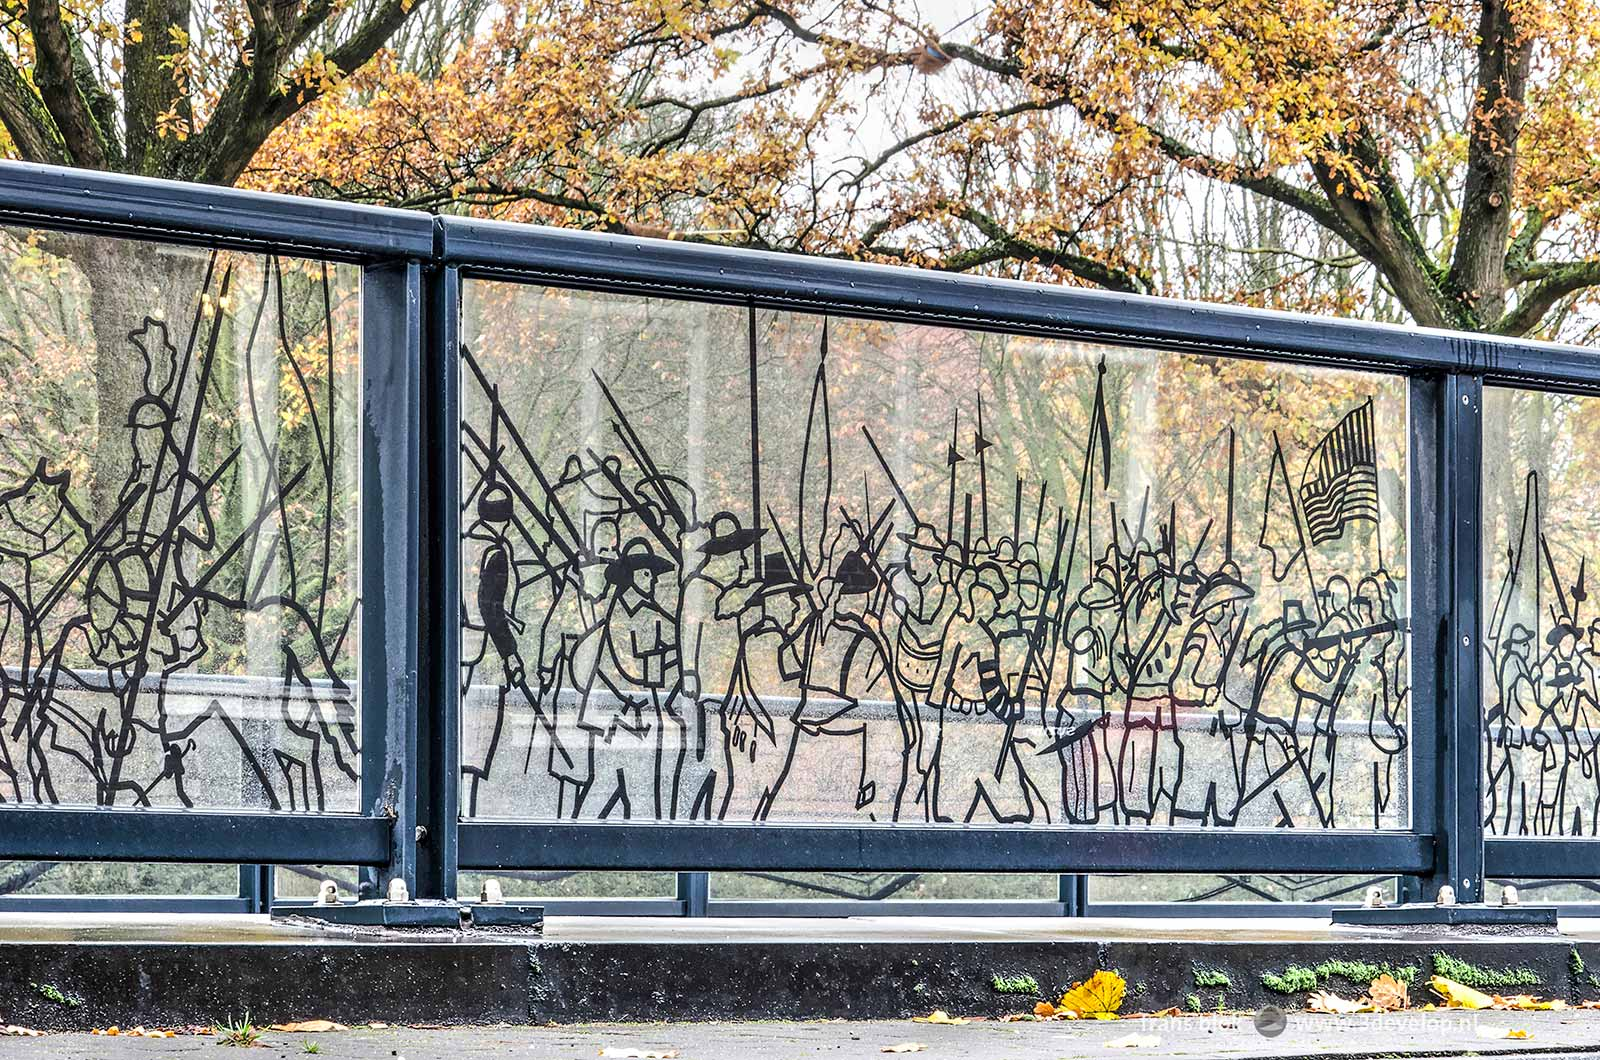 Detail of the glas panels on Koninginneplein in Venlo, The Netherlands, with a historic army scene from the city's history.